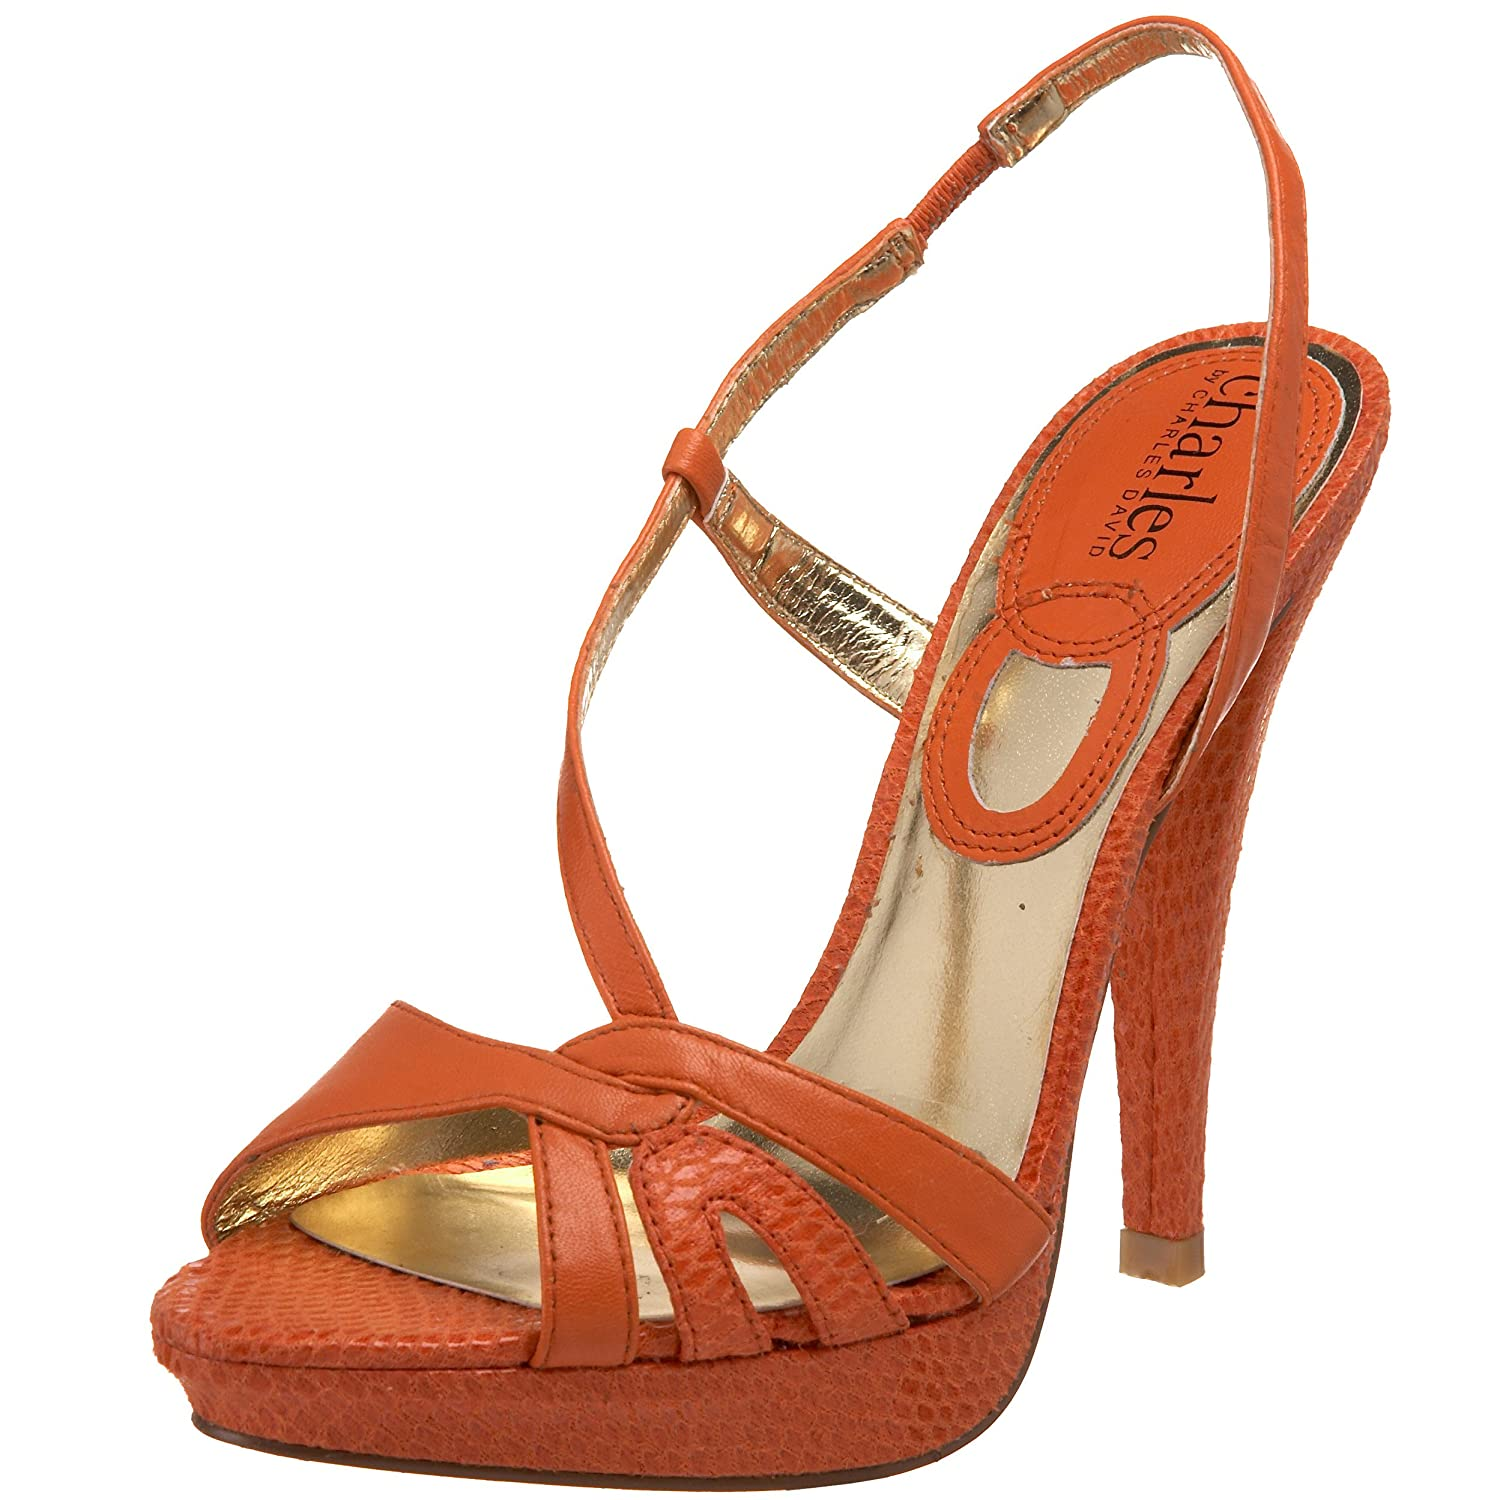 Charles by Charles David Anise Platform Sandal from endless.com